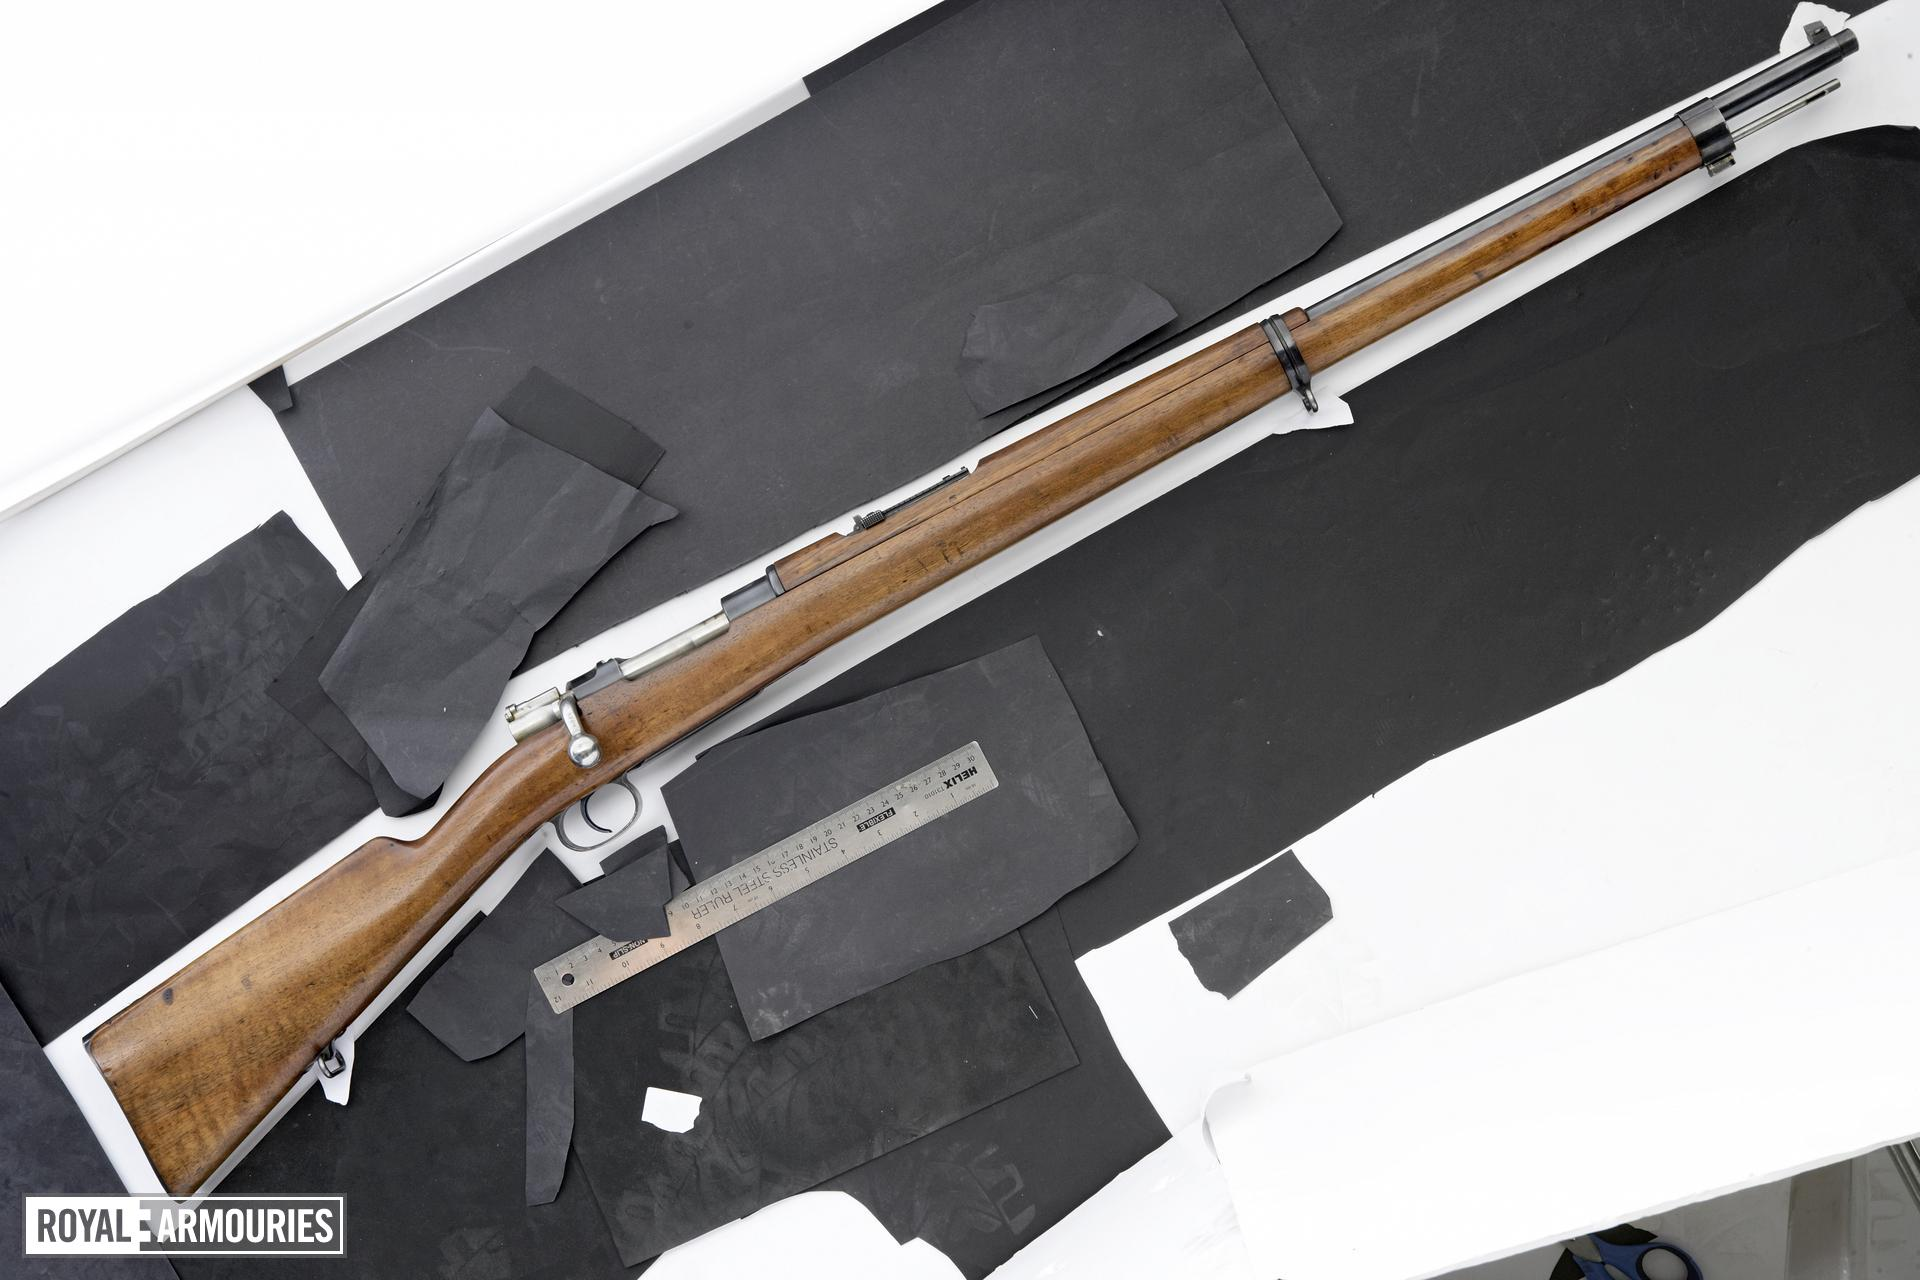 Centrefire bolt-action rifle - Mauser Model 1896